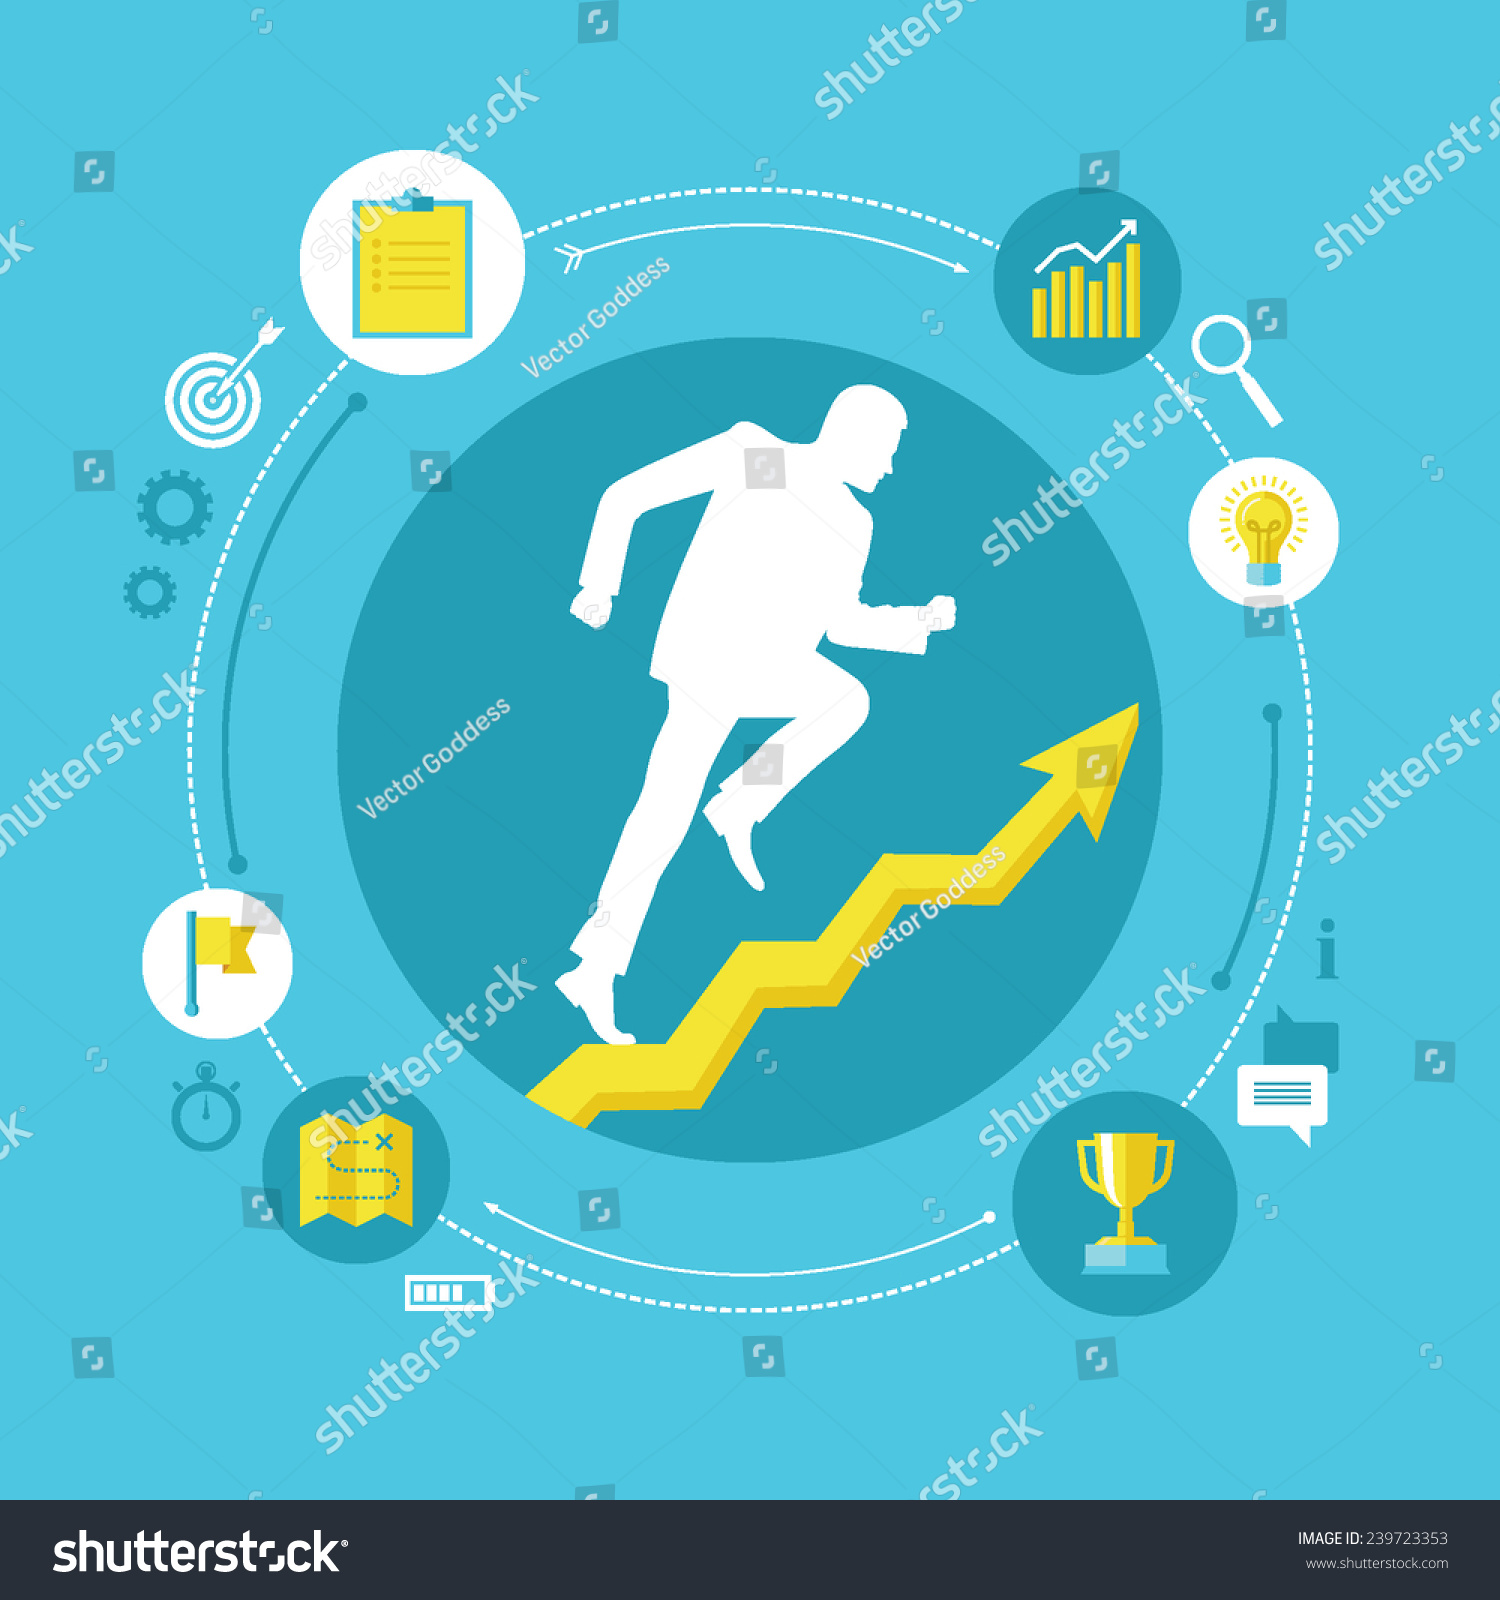 flat design colorful vector illustration concept stock vector flat design colorful vector illustration concept for personal development professional growth successful career